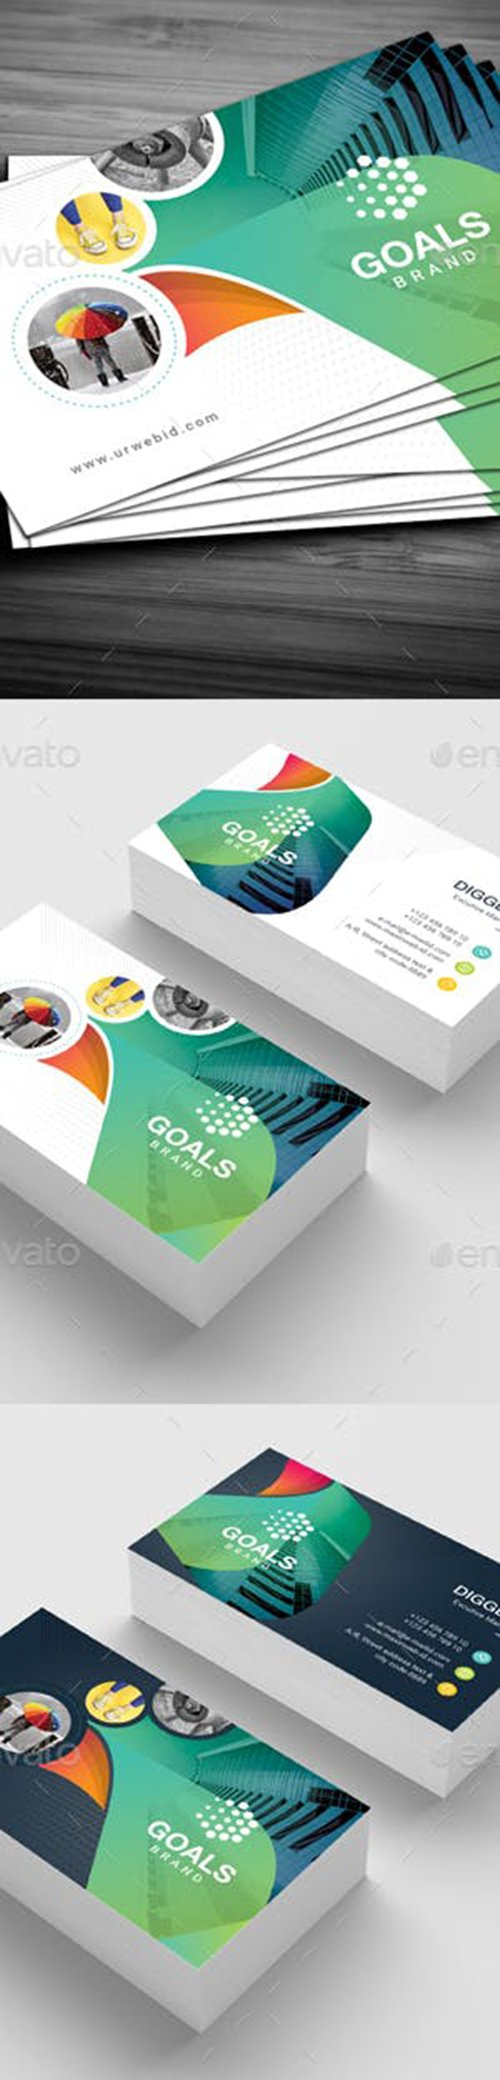 Graphicriver - Business Card 22086805